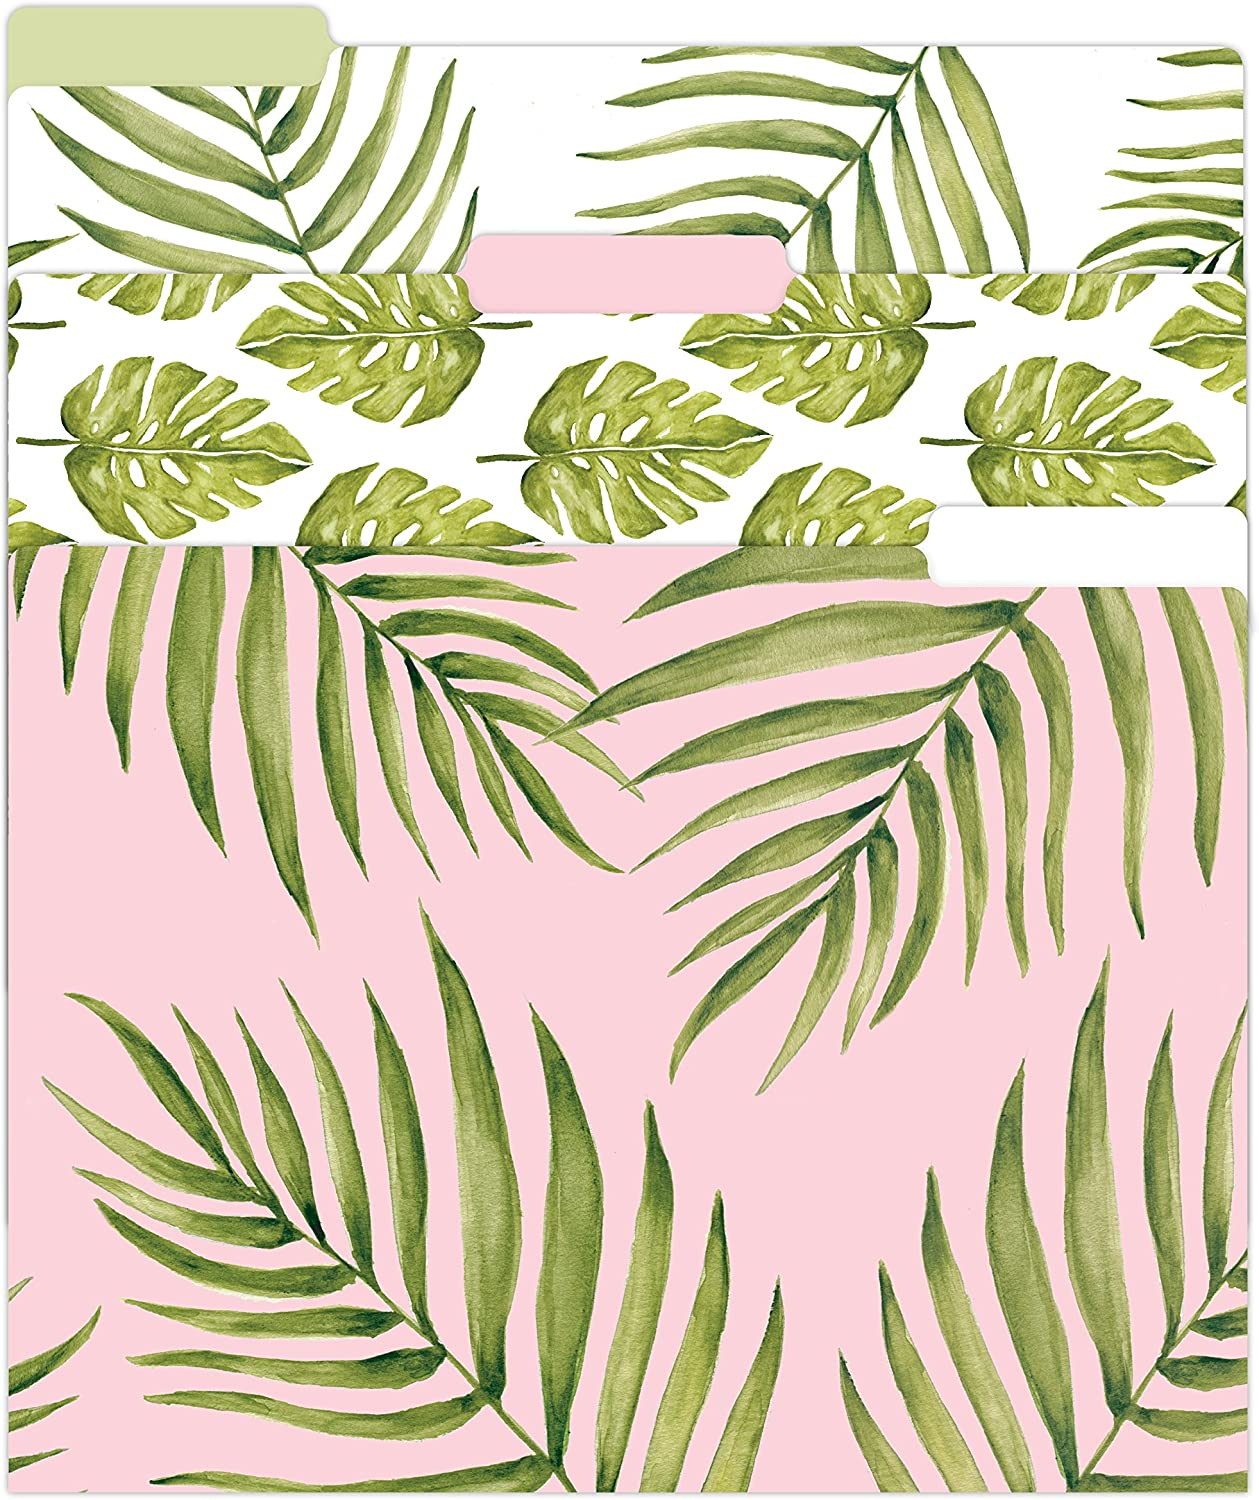 """bloom daily planners Decorative File Folders - Set of Six Letter Size (8.5"""" x 11"""") Organizers, 1/3 Cut Tabs - Assorted Designs - Palm Leaves"""